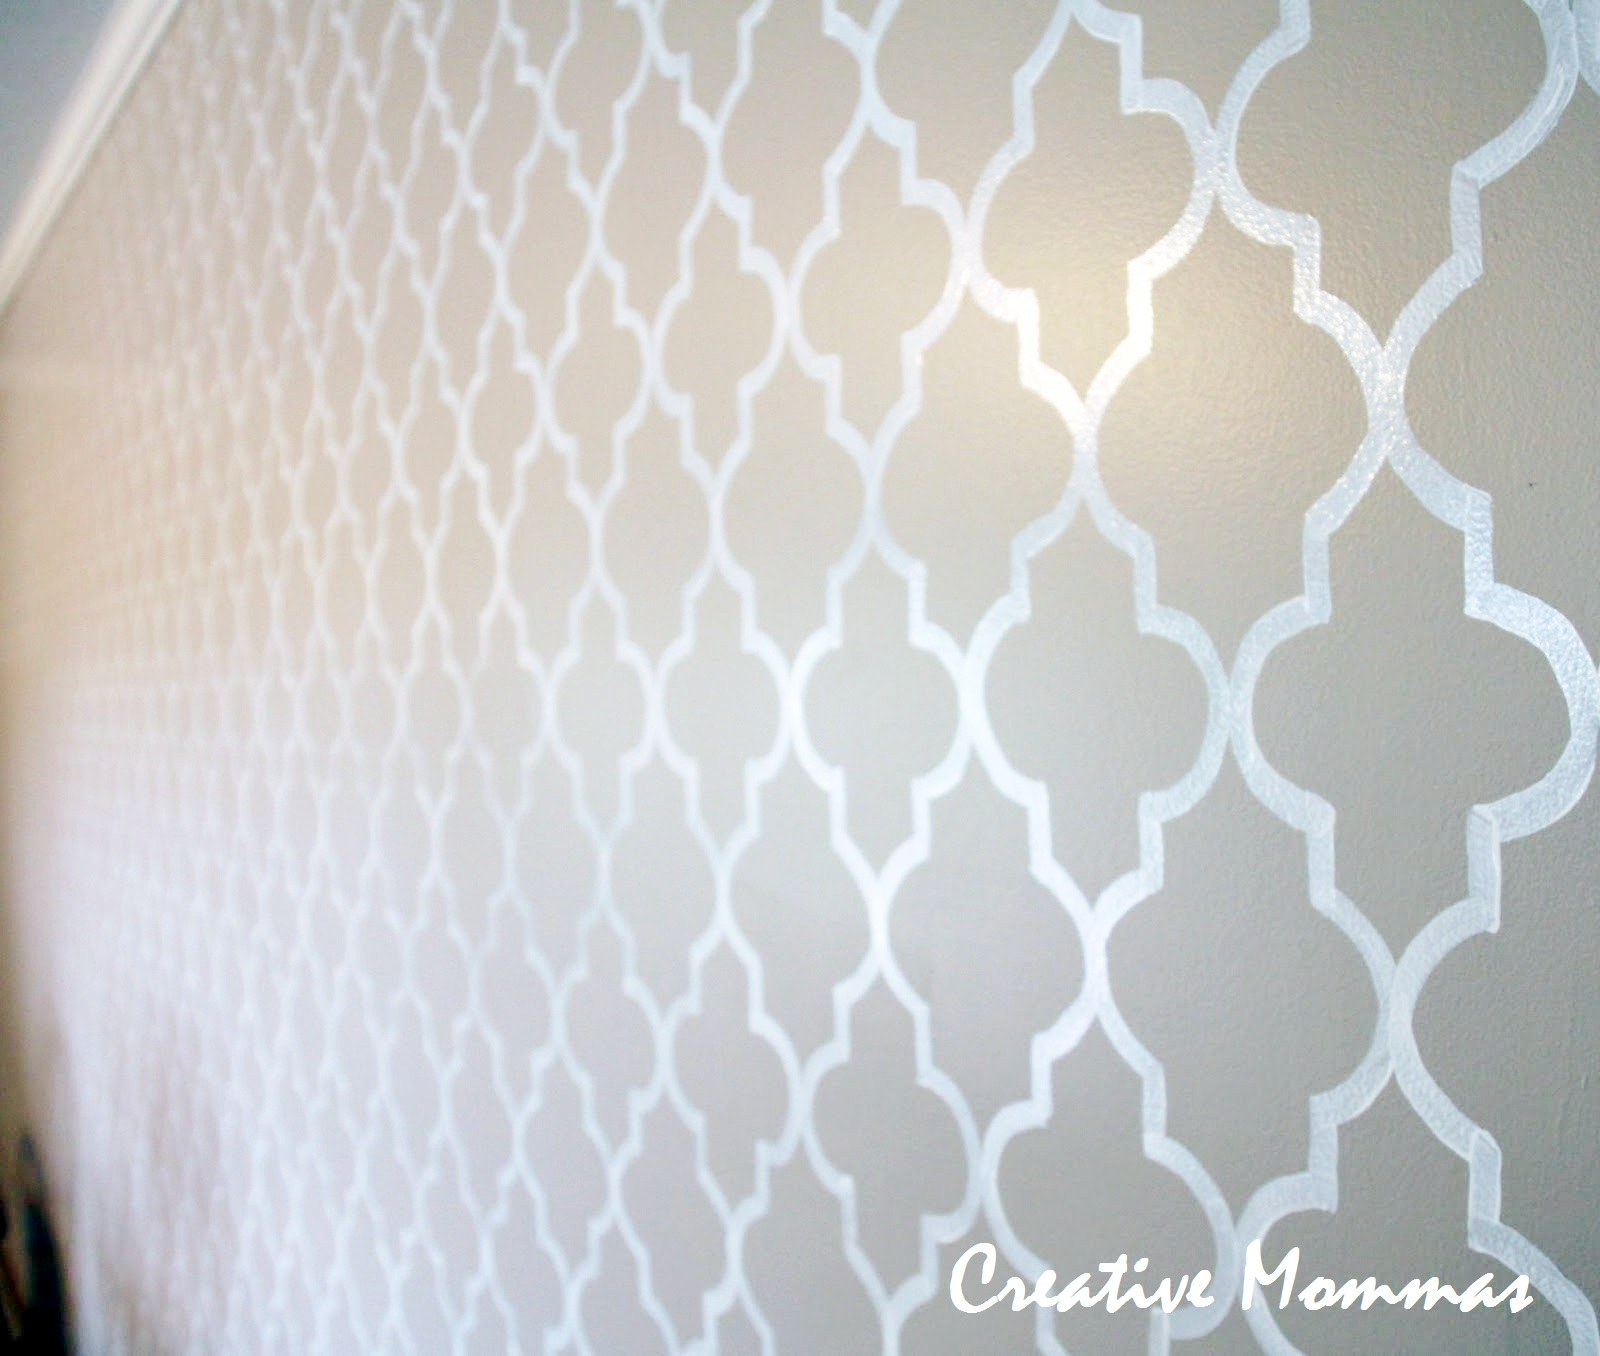 Creative mommas stenciled wall A wall painting